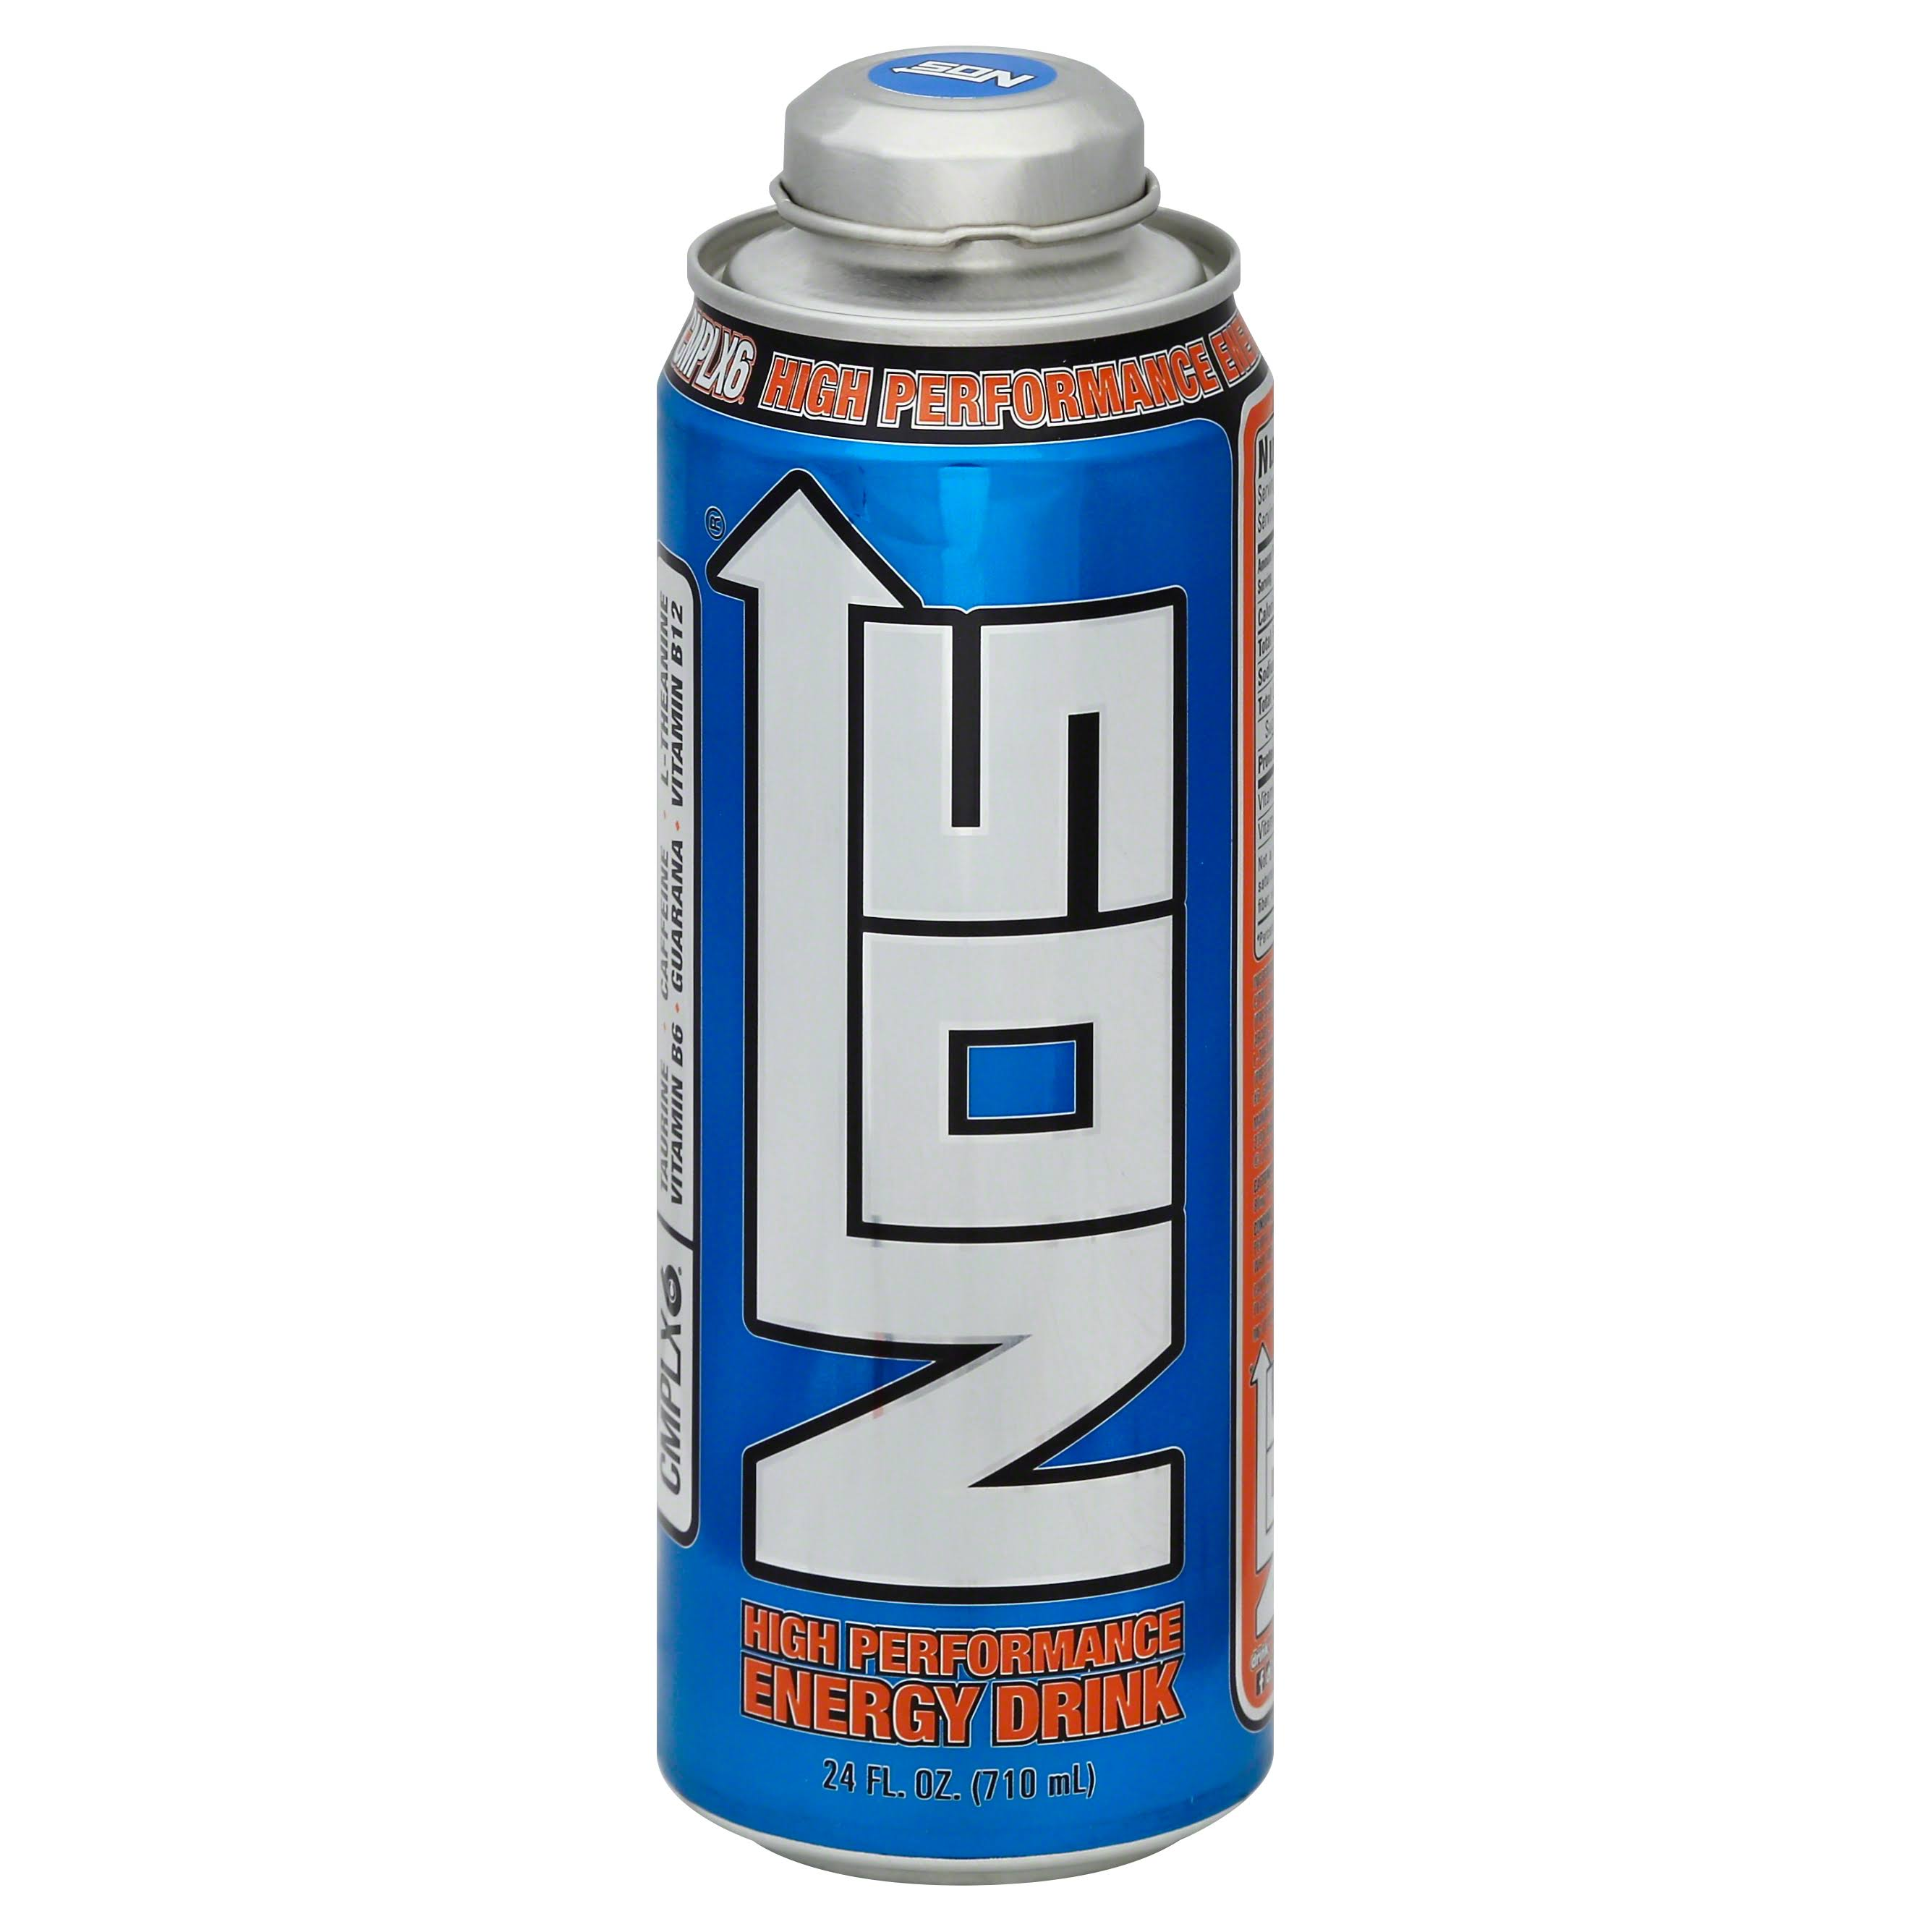 NOS High Performance Energy Drink - 24 fl oz can